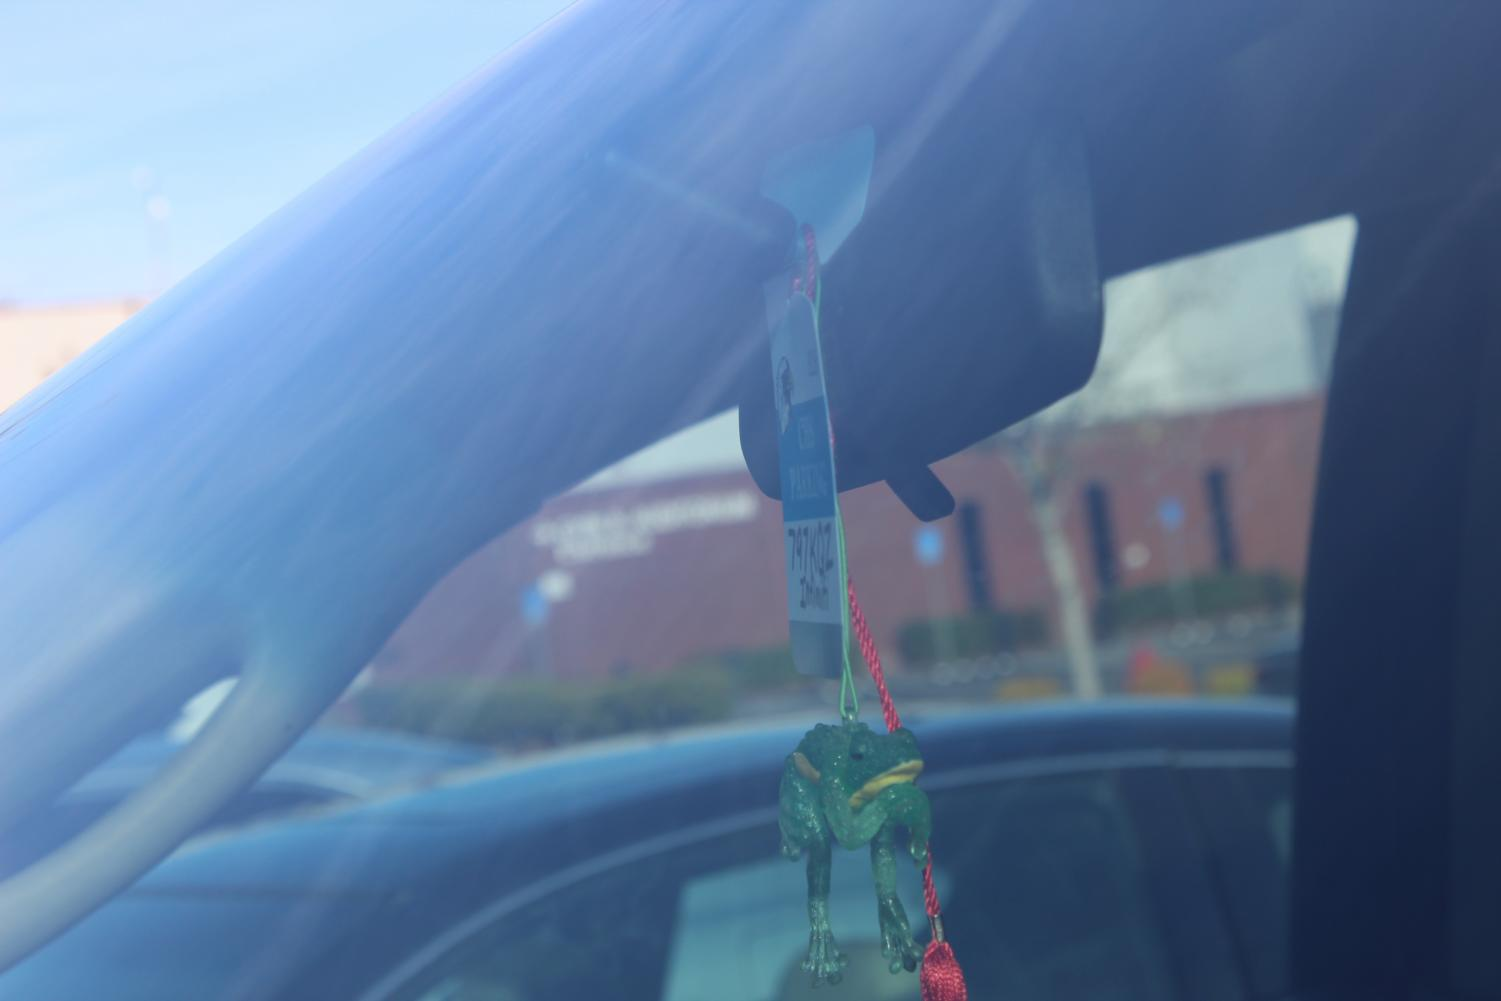 Parking passes hanging from cars parked in the lot. Parking passes are required in order to park.